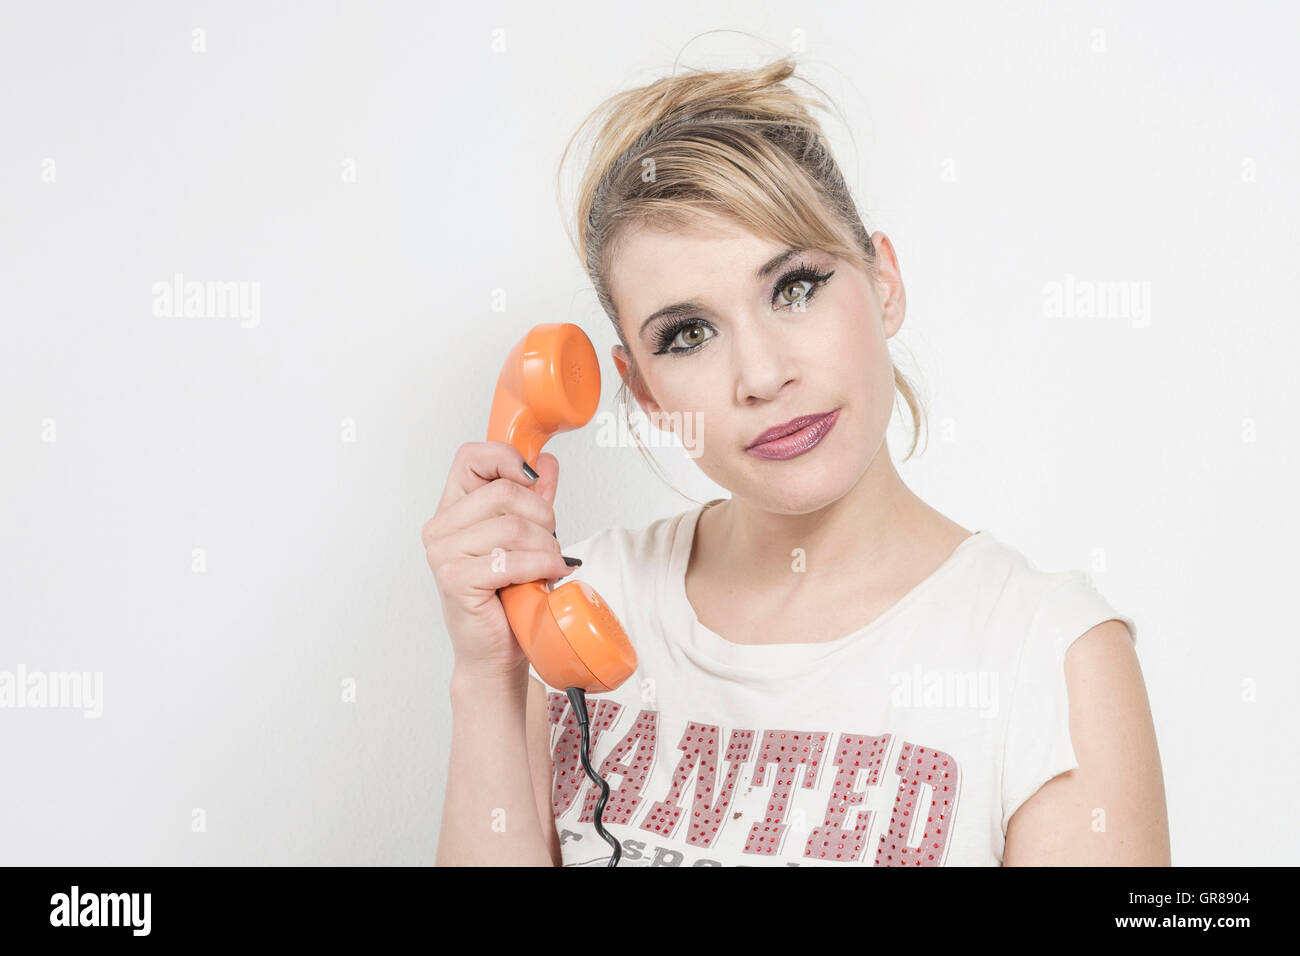 Young Blond Woman With Thoughtful And Naive Look During A Telephone Conversation - Stock Image